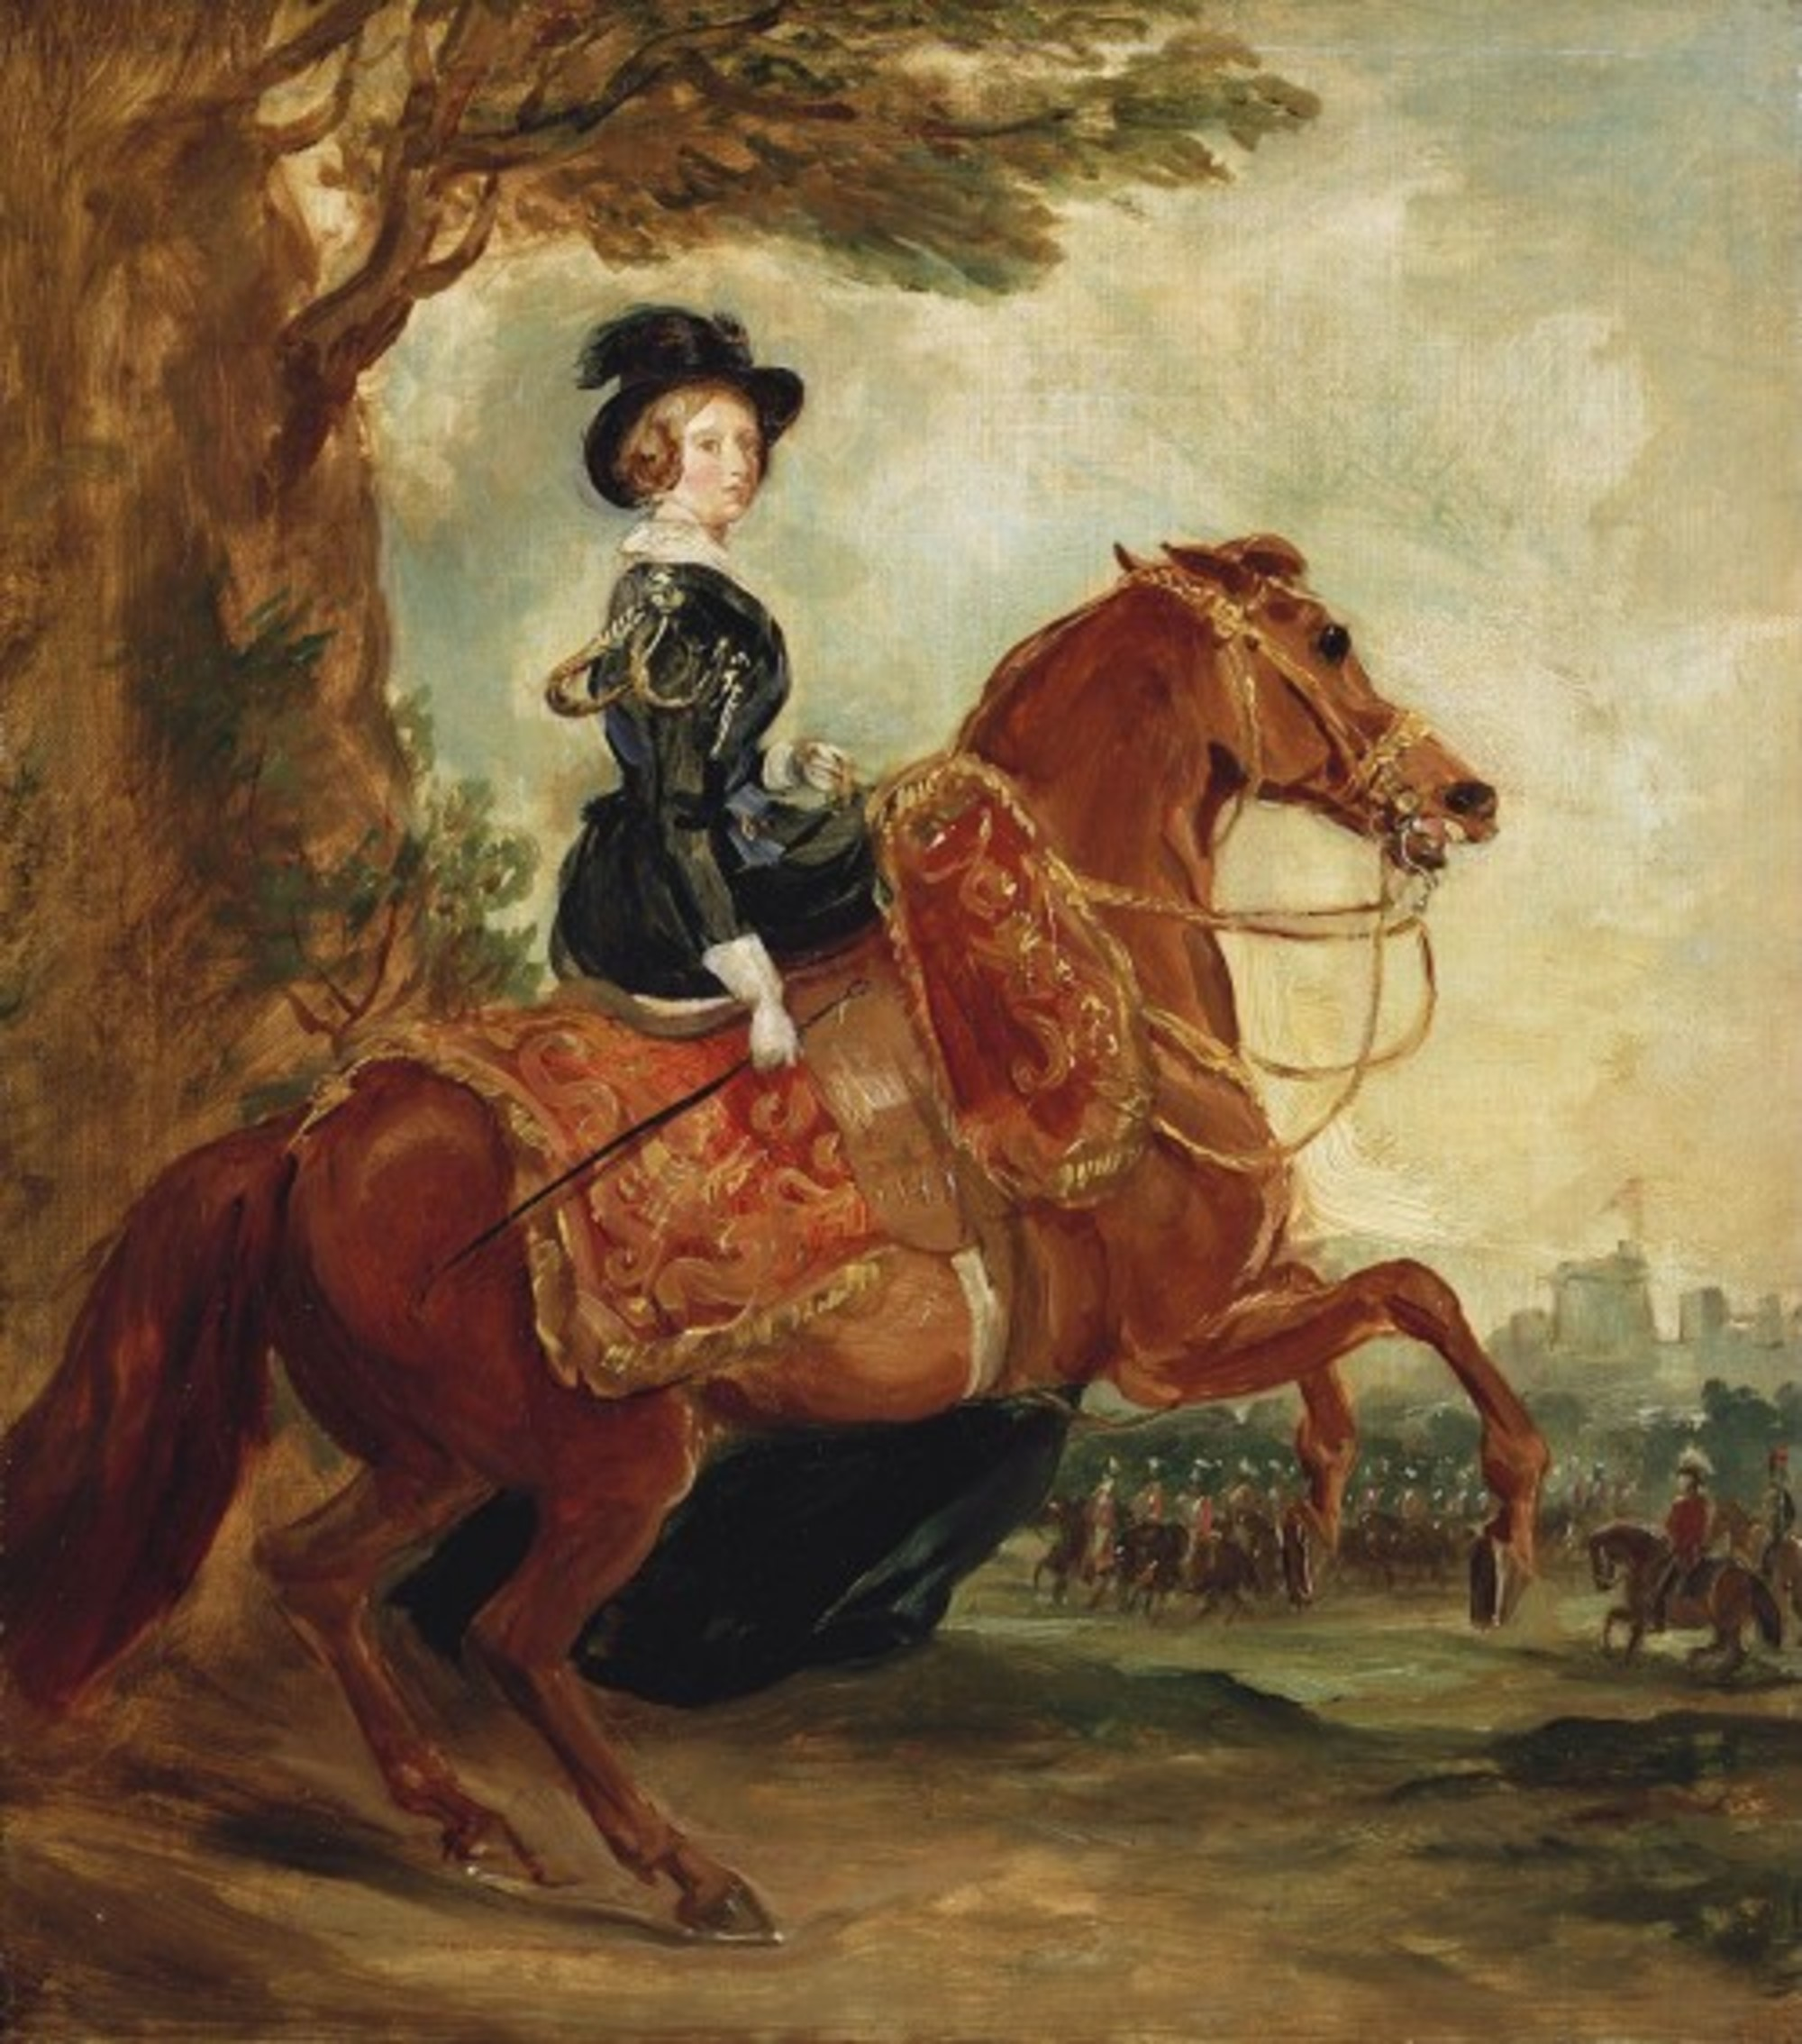 Queen-Victoria-on-horseback---Grant-1845.jpg